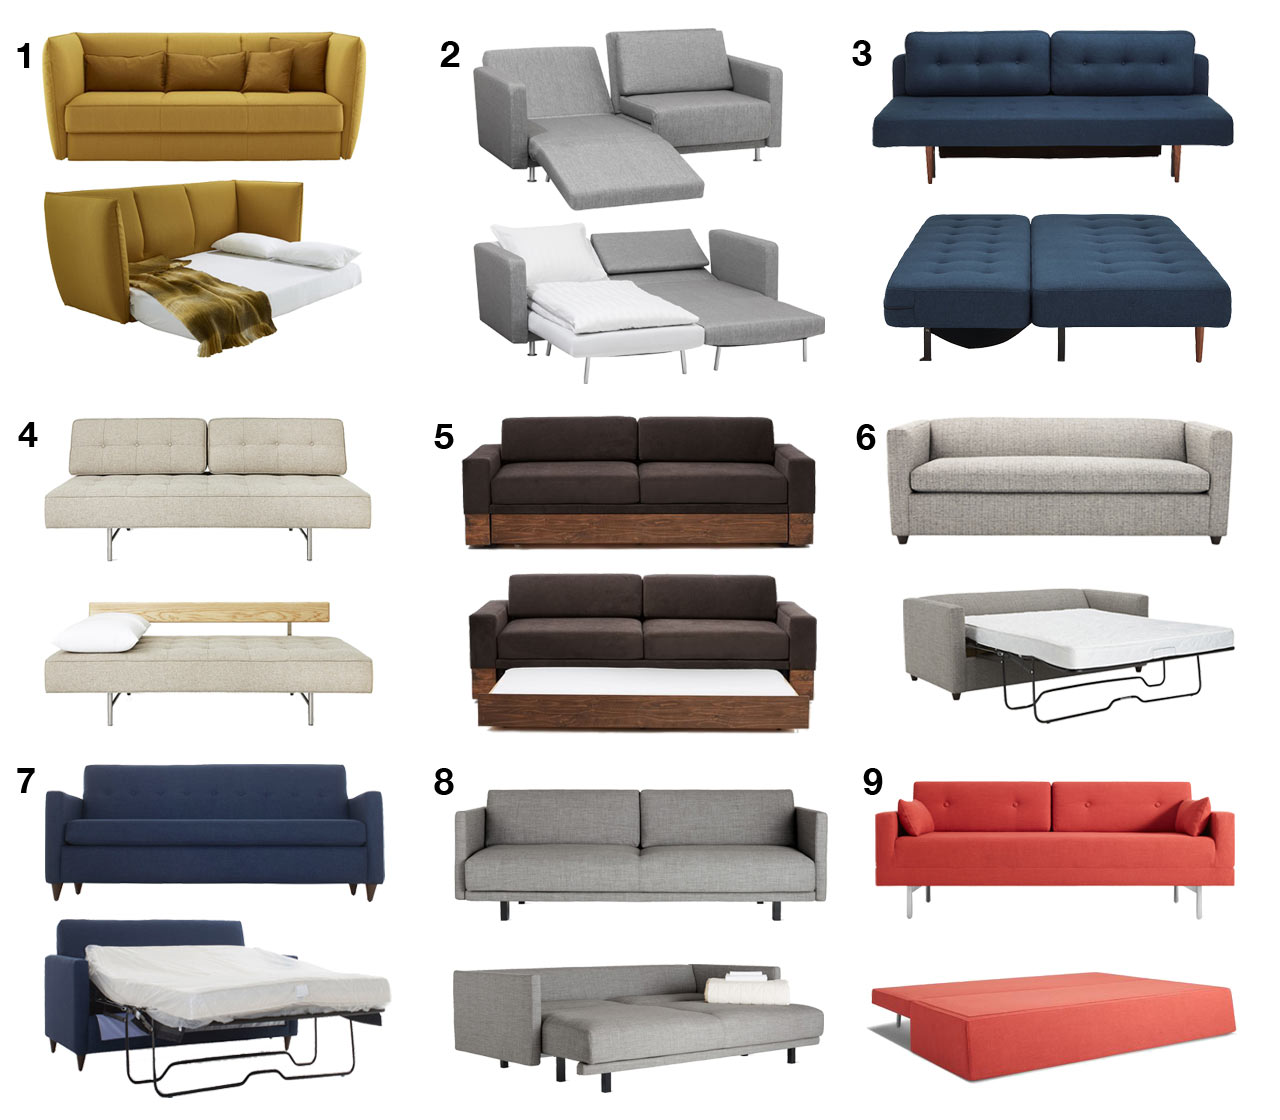 Modern Sofa Beds and Sleeper Sofas Your Guests Wont Hate to Sleep